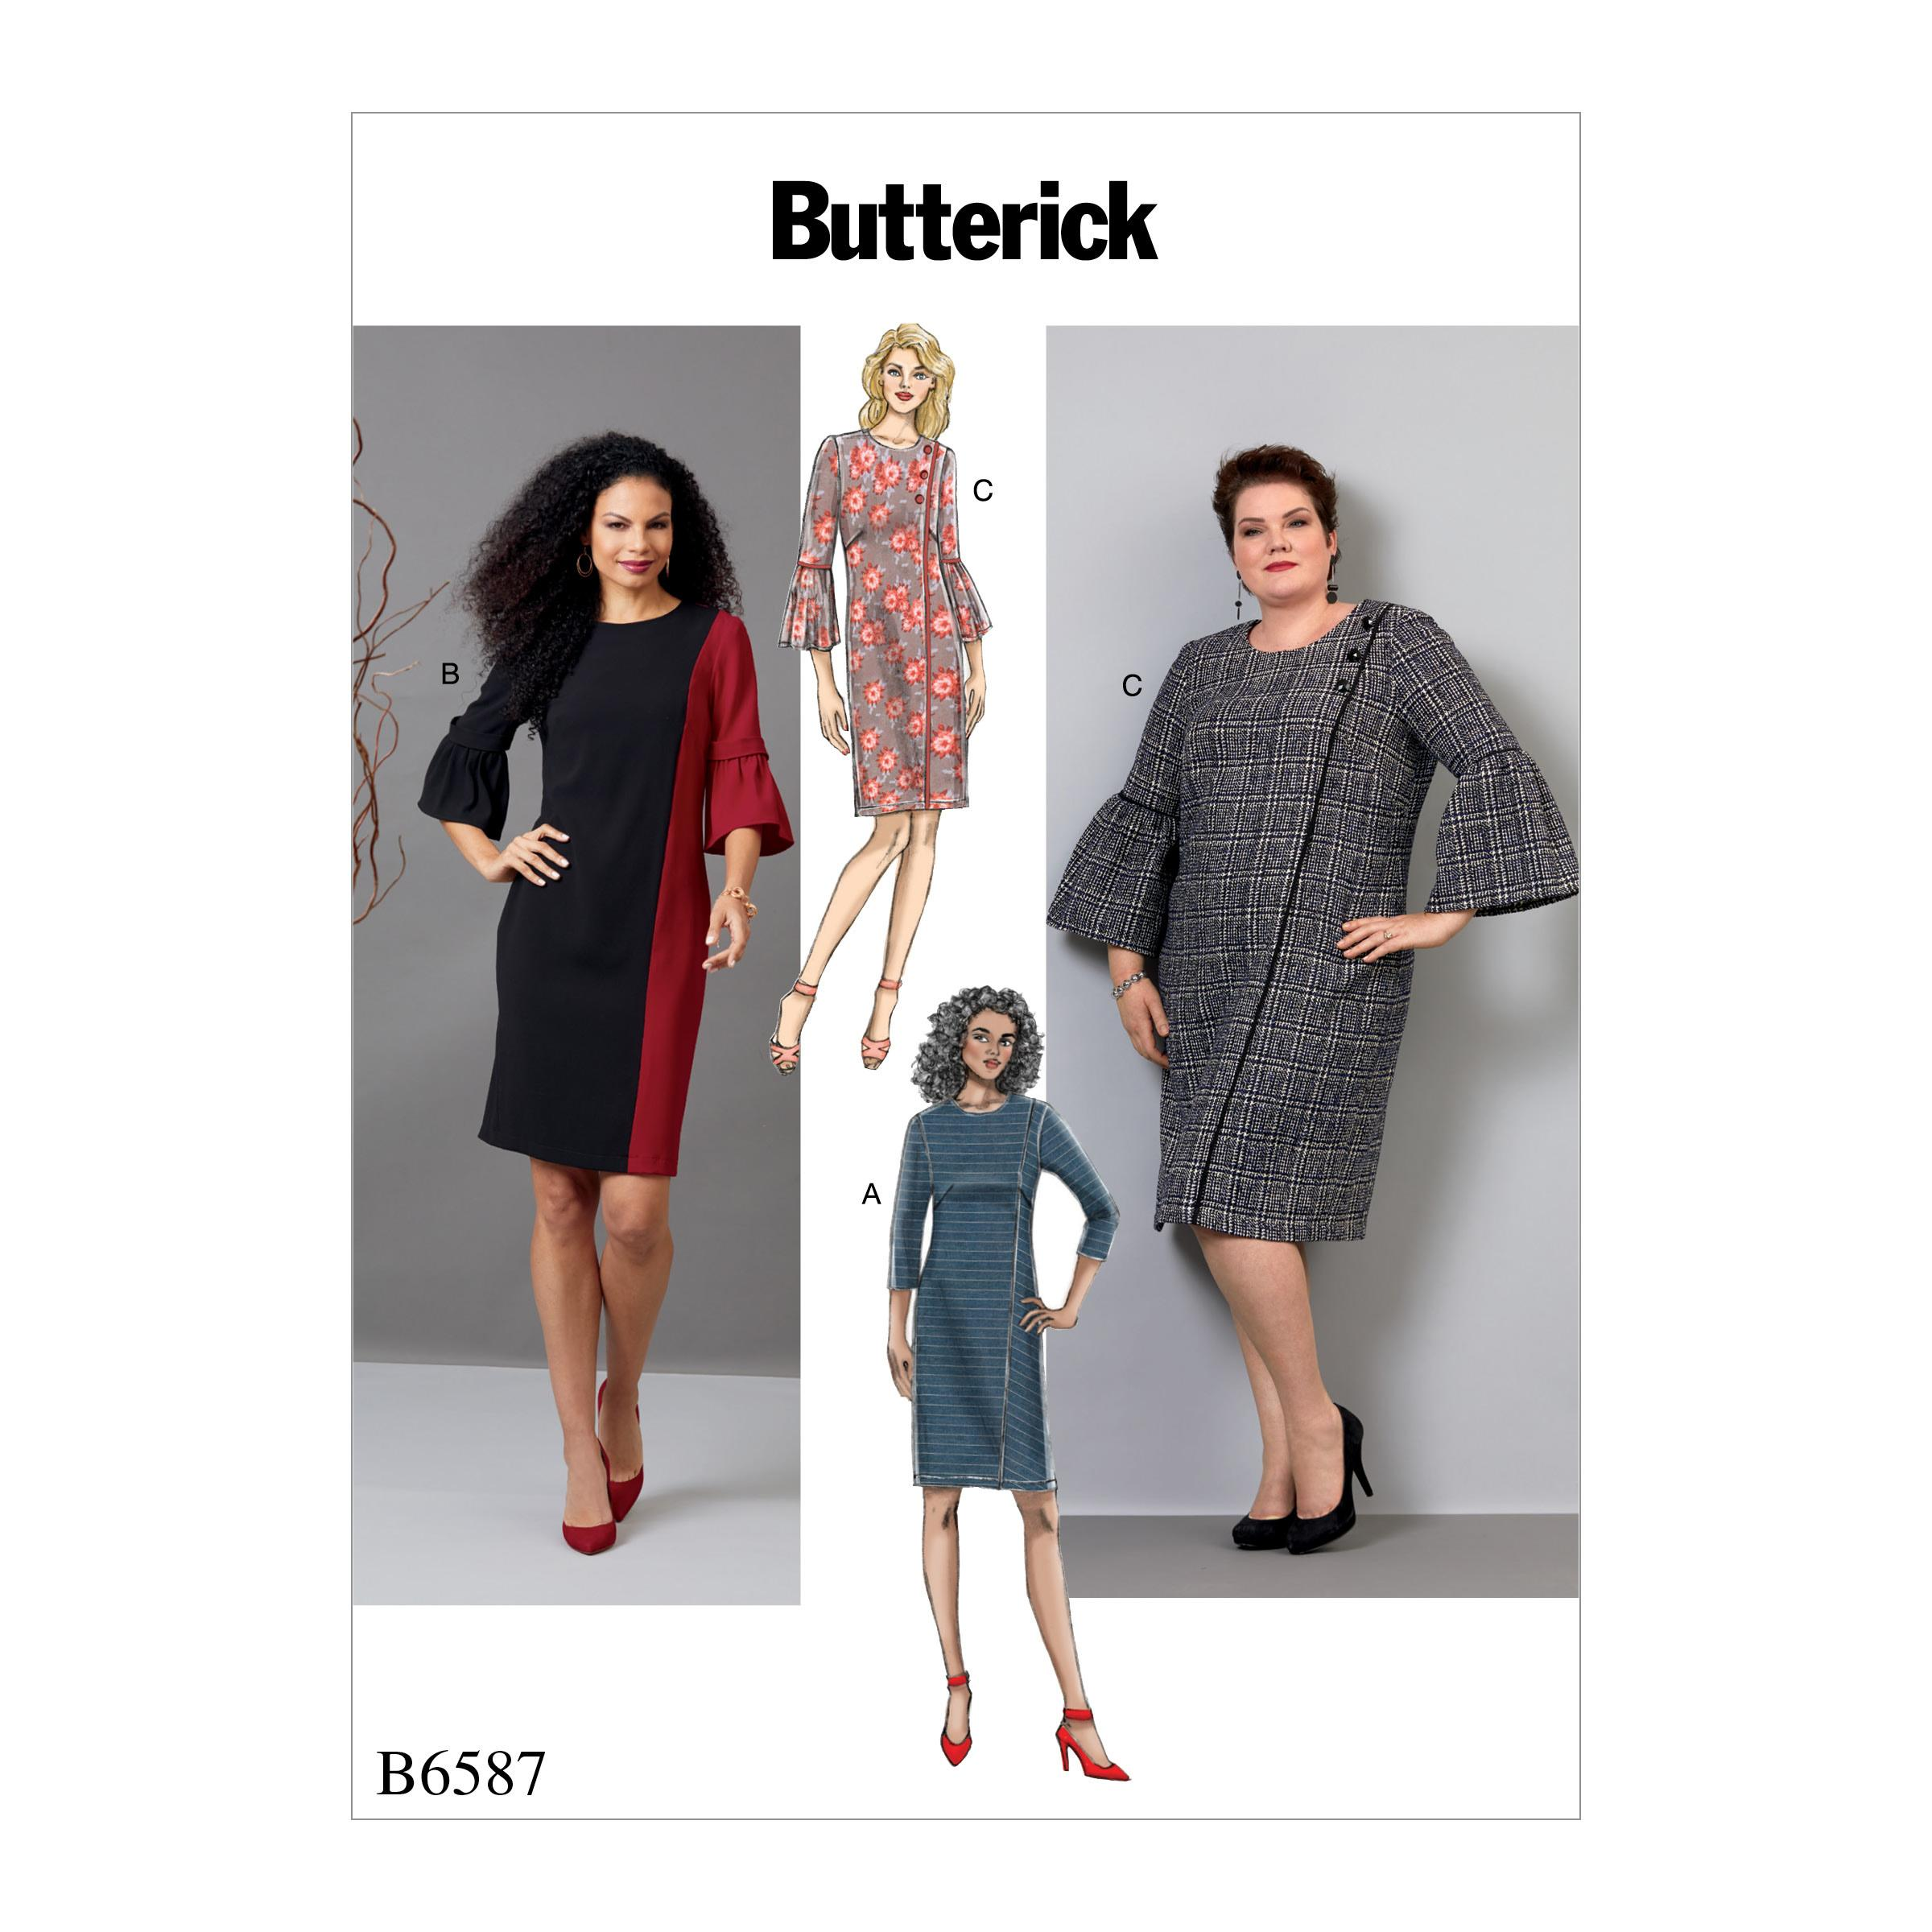 Butterick B6587 Misses'/ Women's Dress